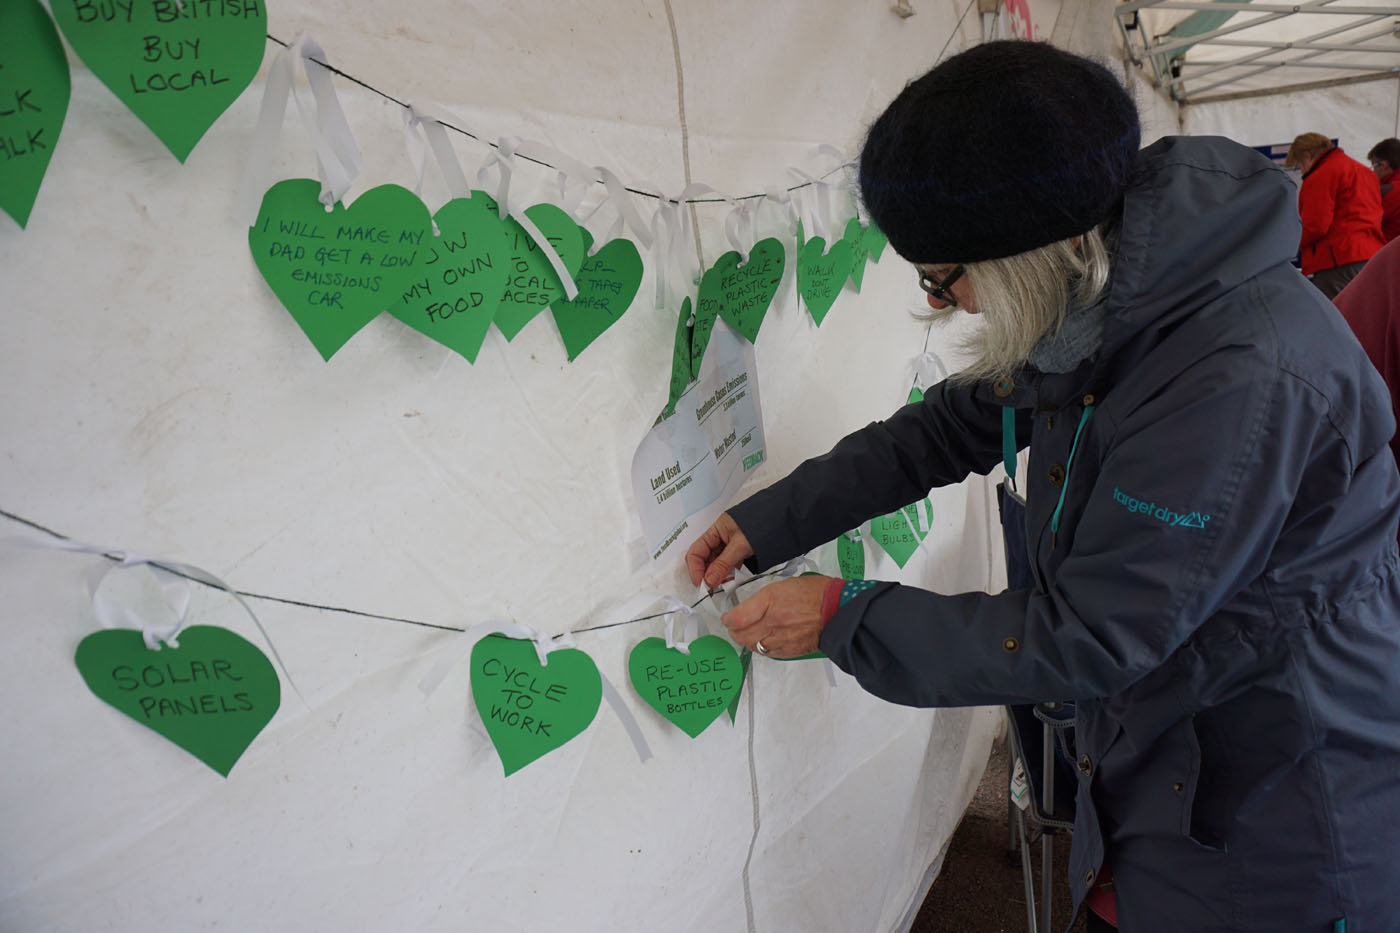 Photograph of a string of pledges written on green hearts